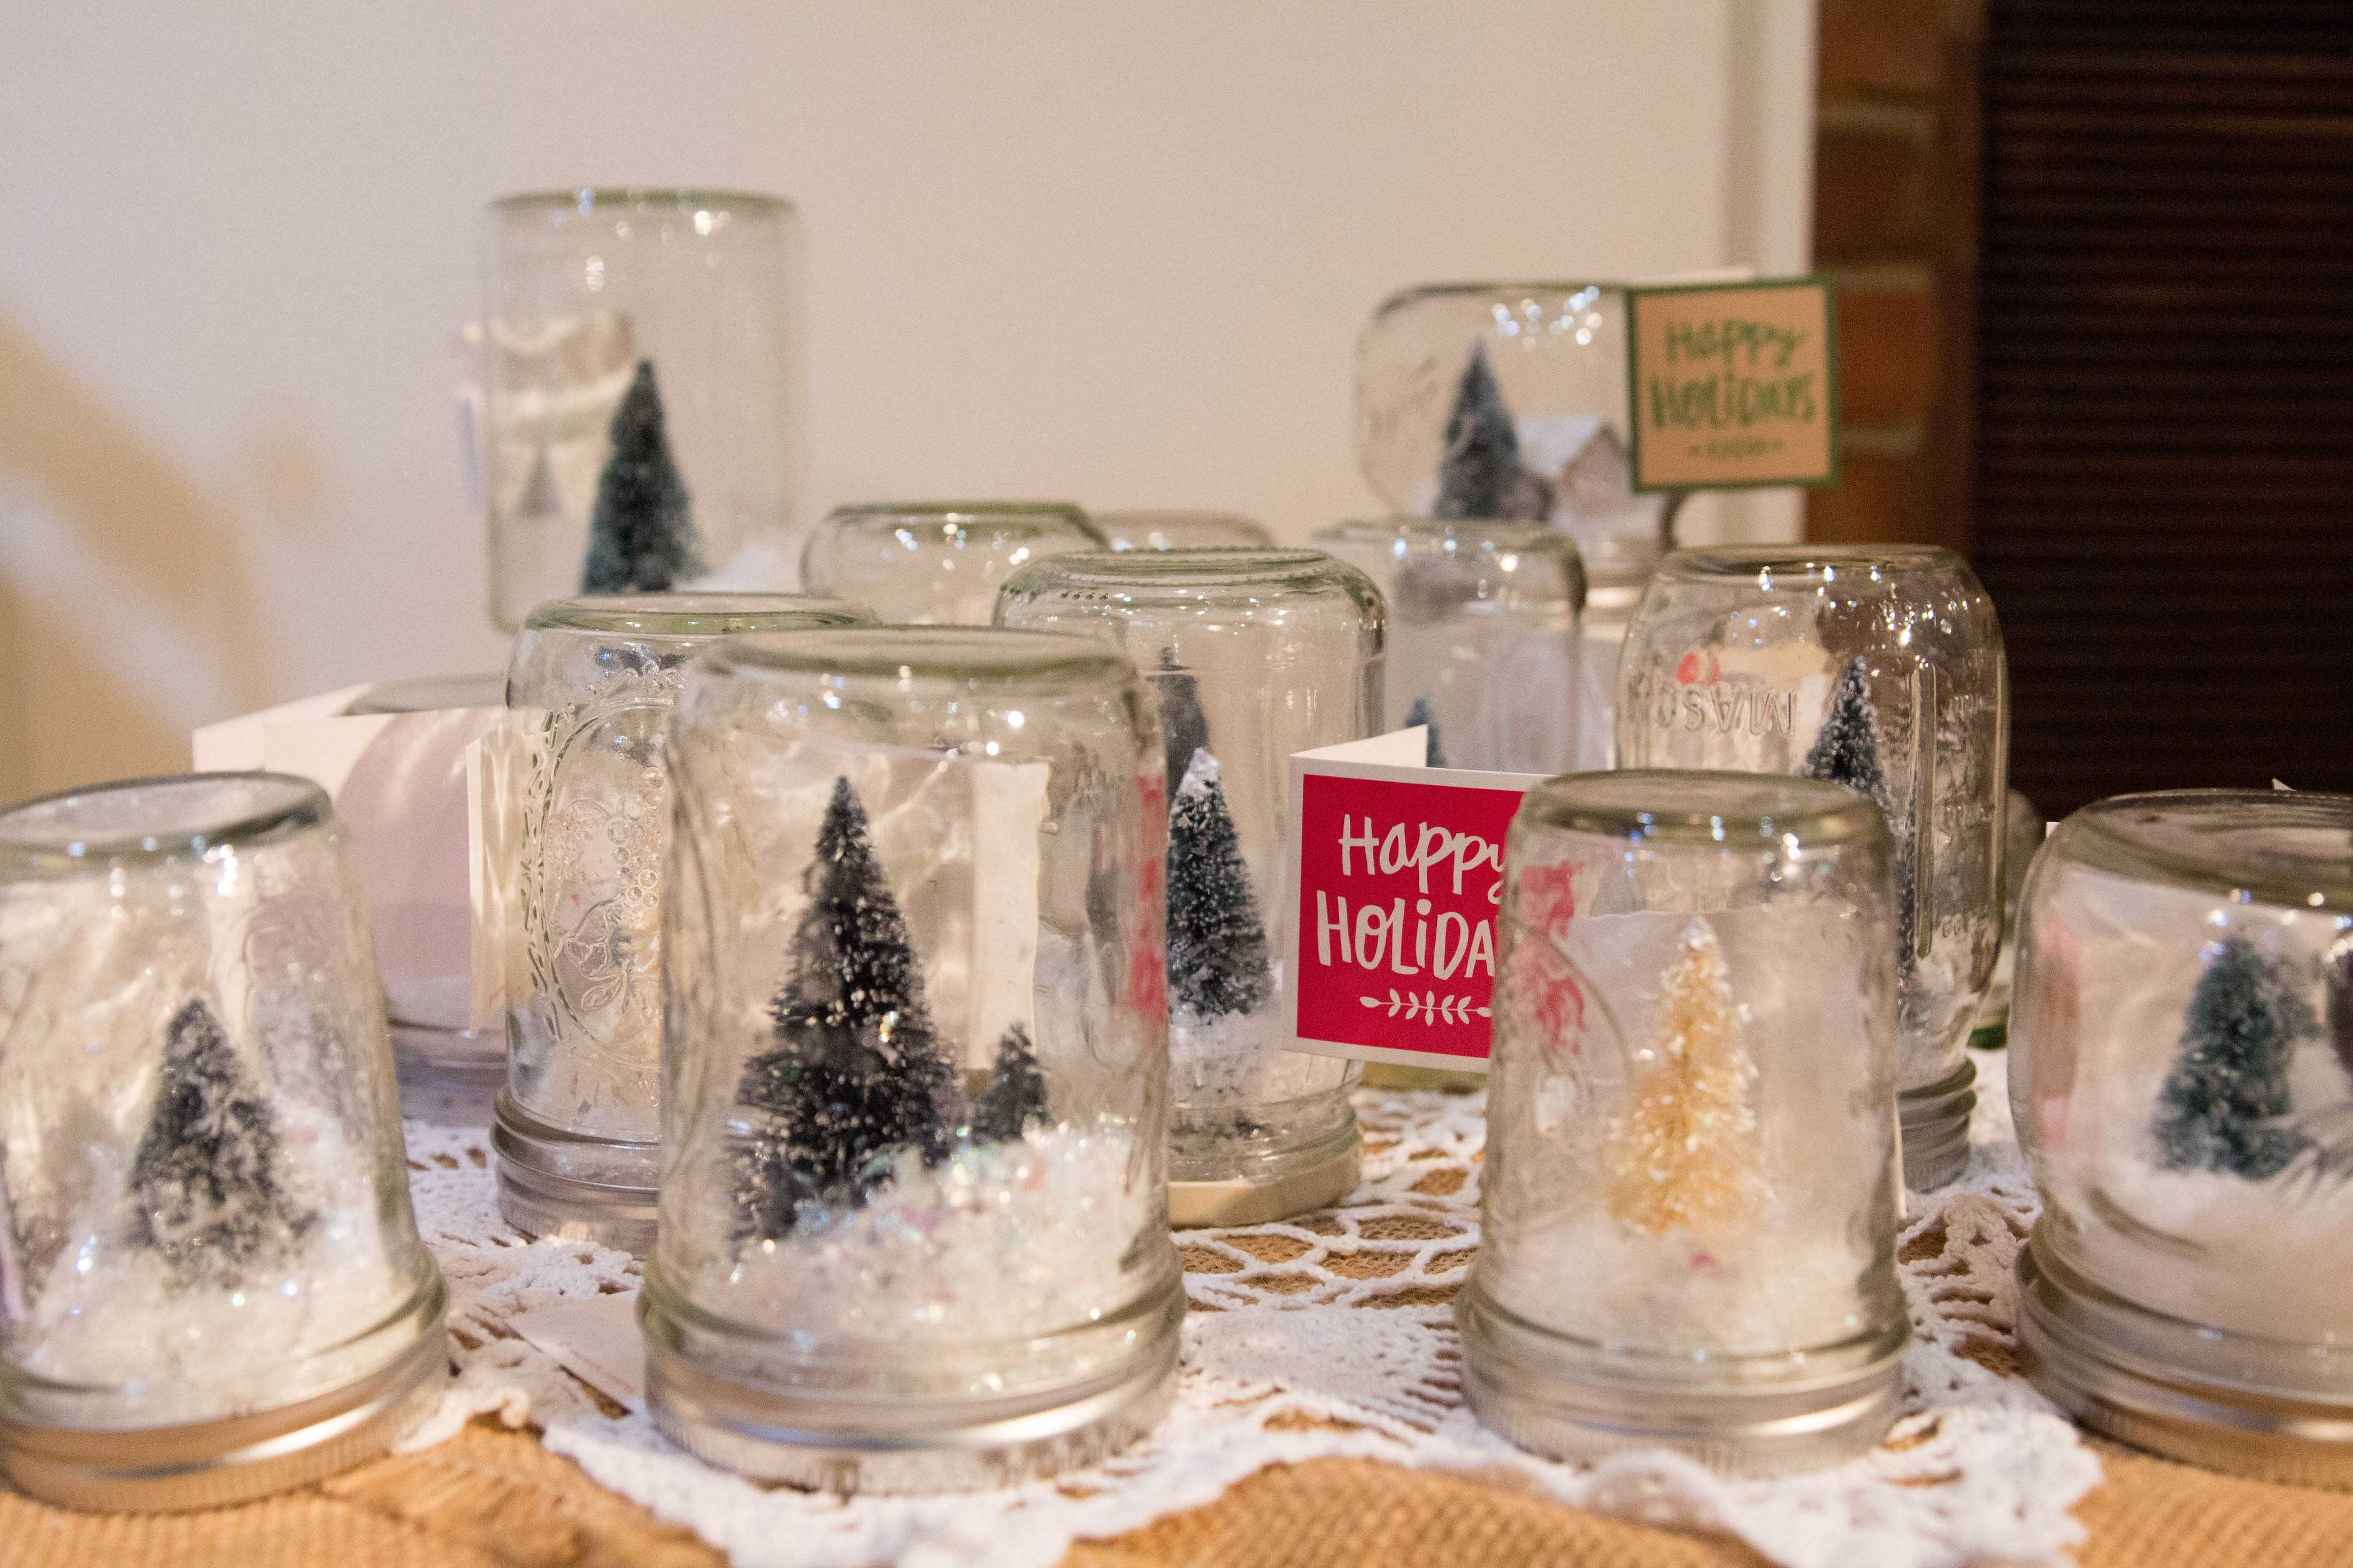 Sarratt Art Studios' Holiday Arts Festival brings unique holiday gifts to campus